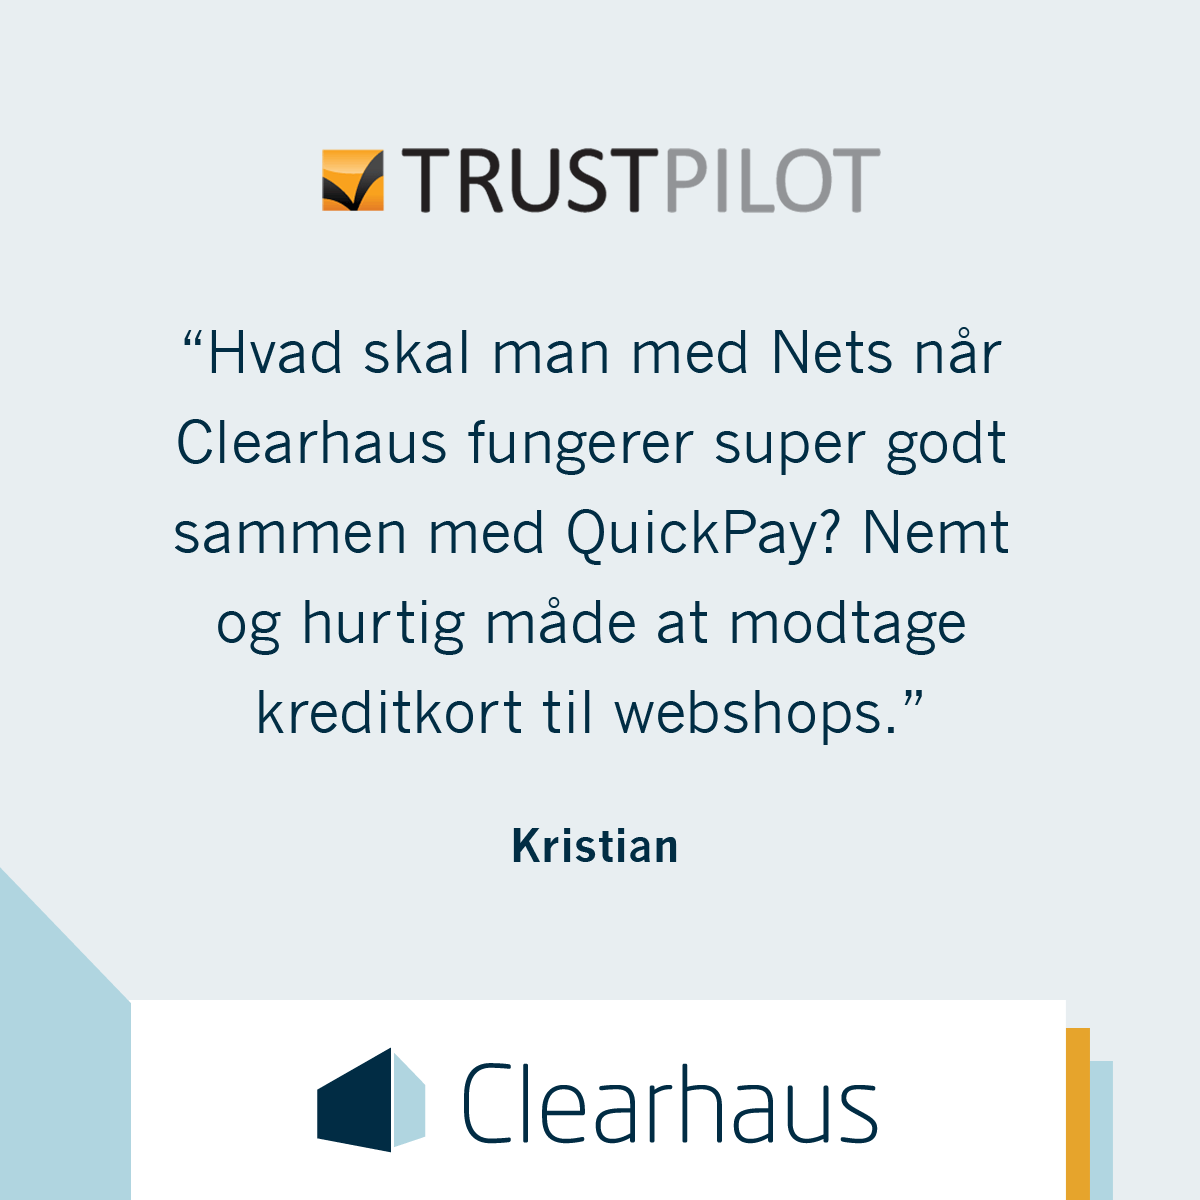 Clearhaus Trustpilot quote box